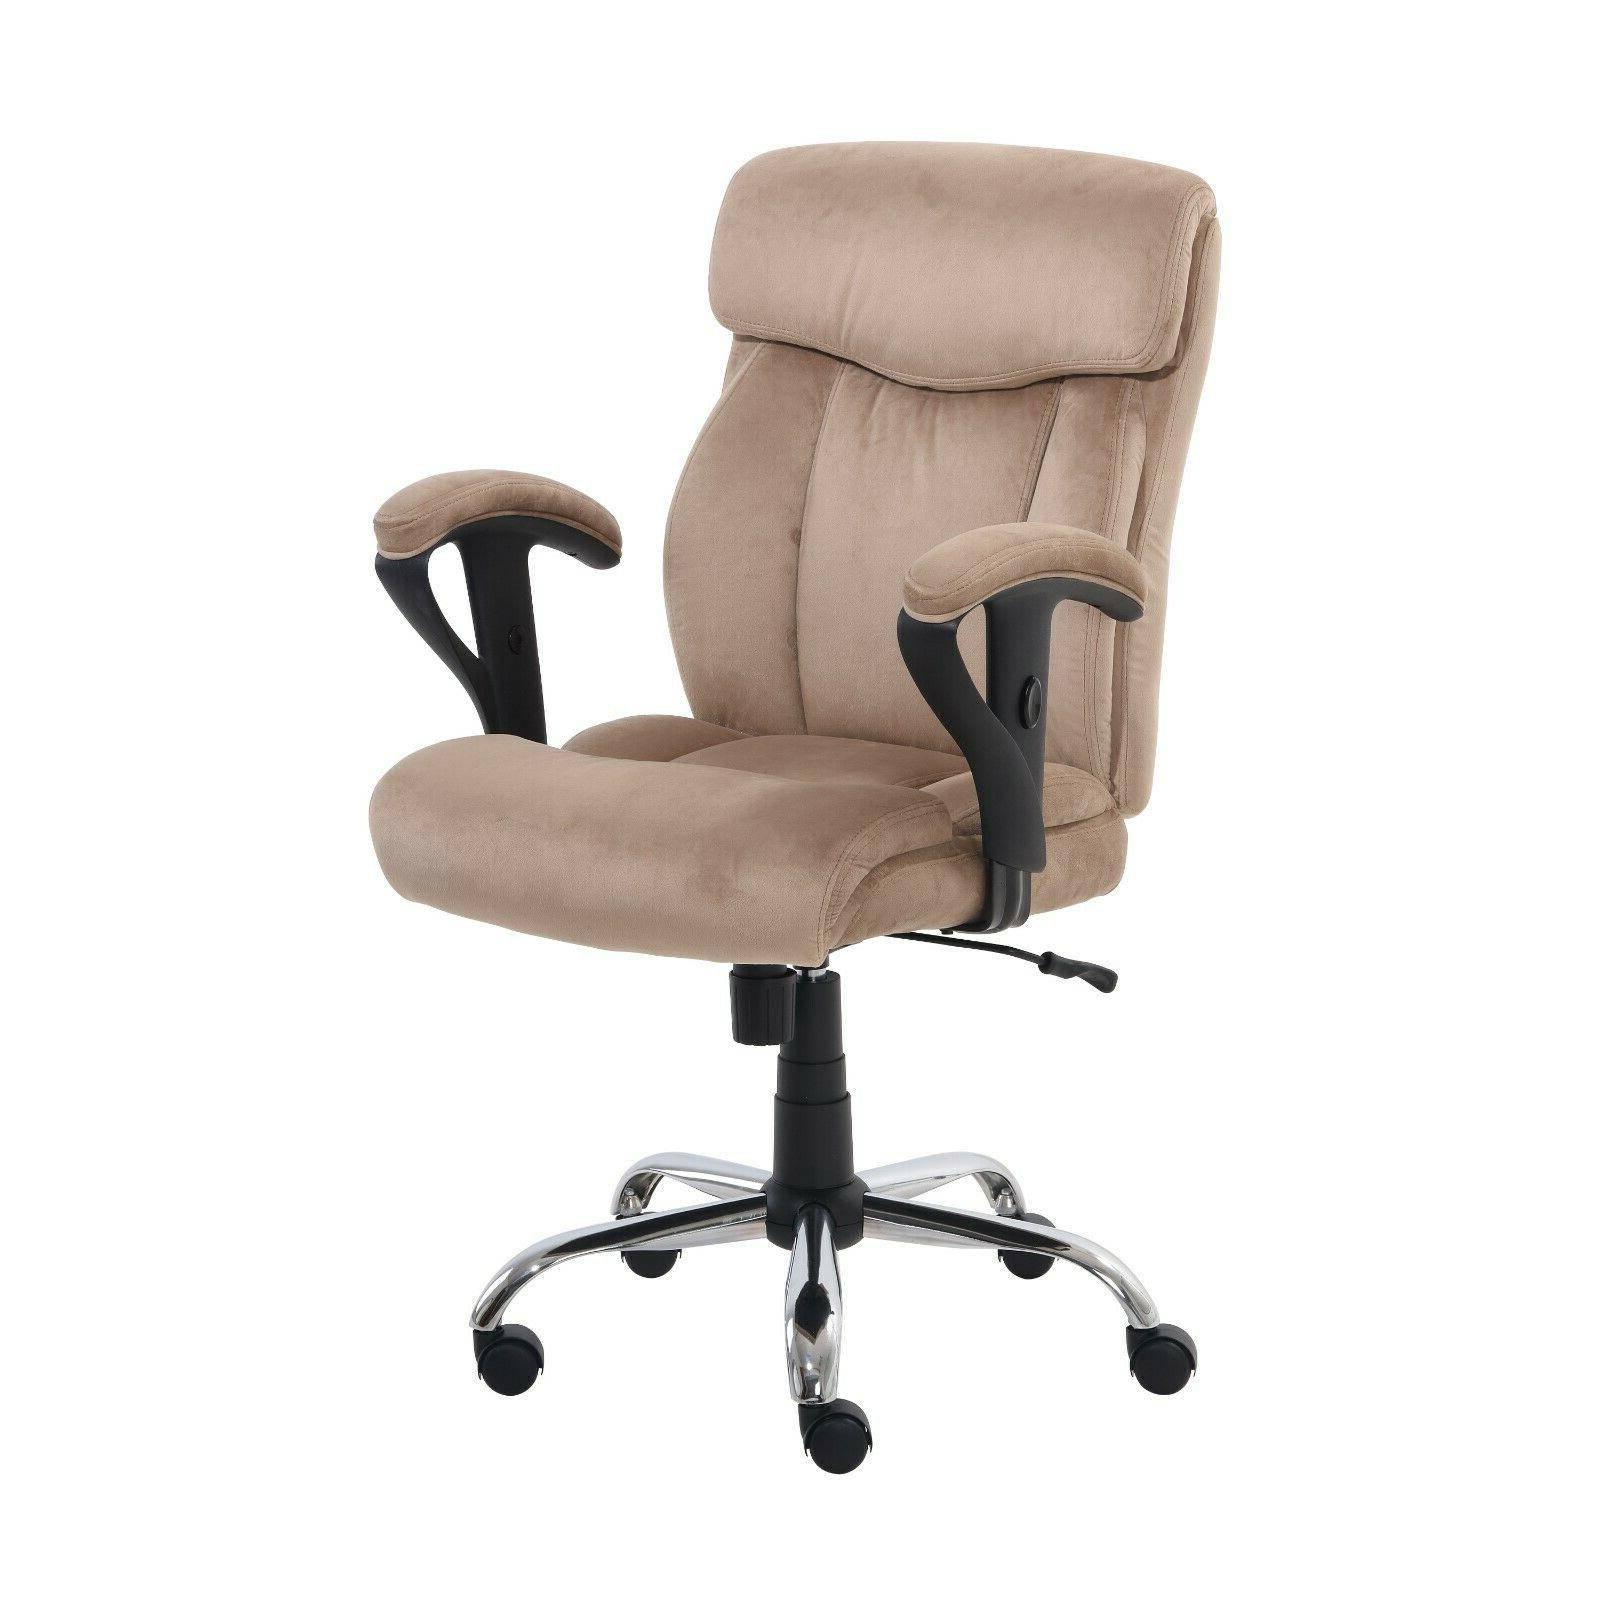 Serta Big & Tall Fabric Manager Office Desk Computer Chair 4